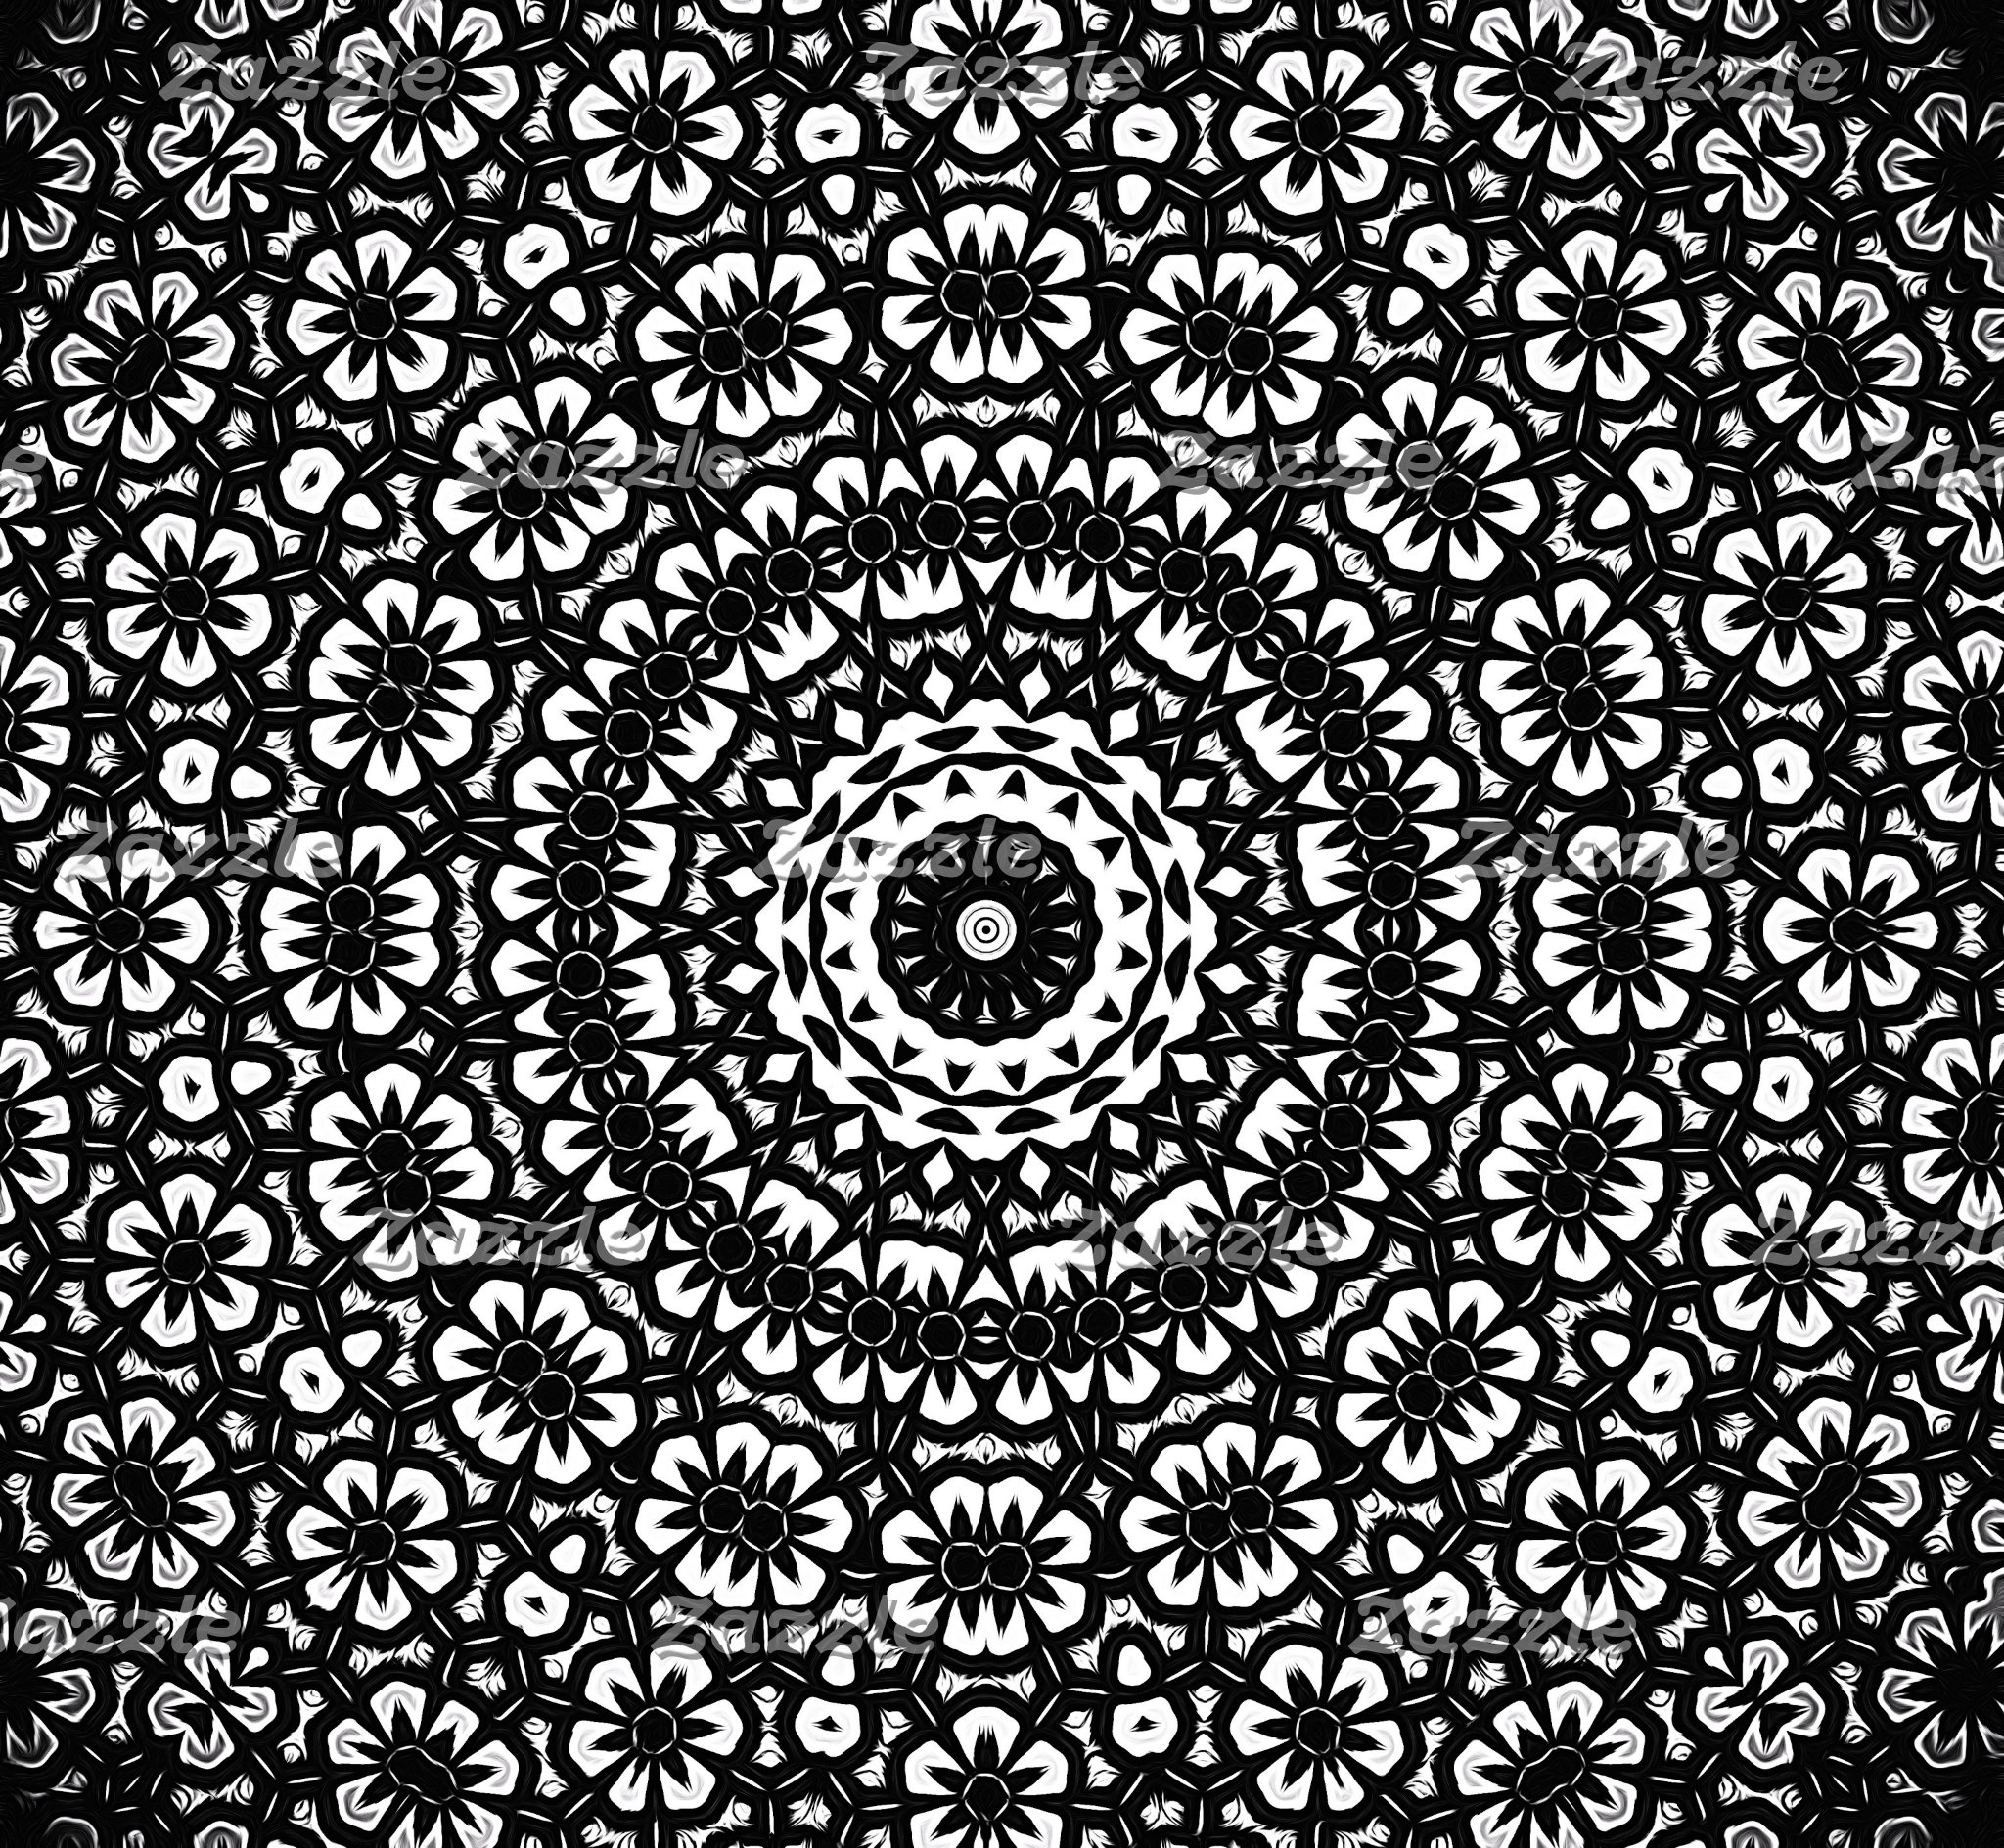 Black and White Kaleidoscope Pattern I